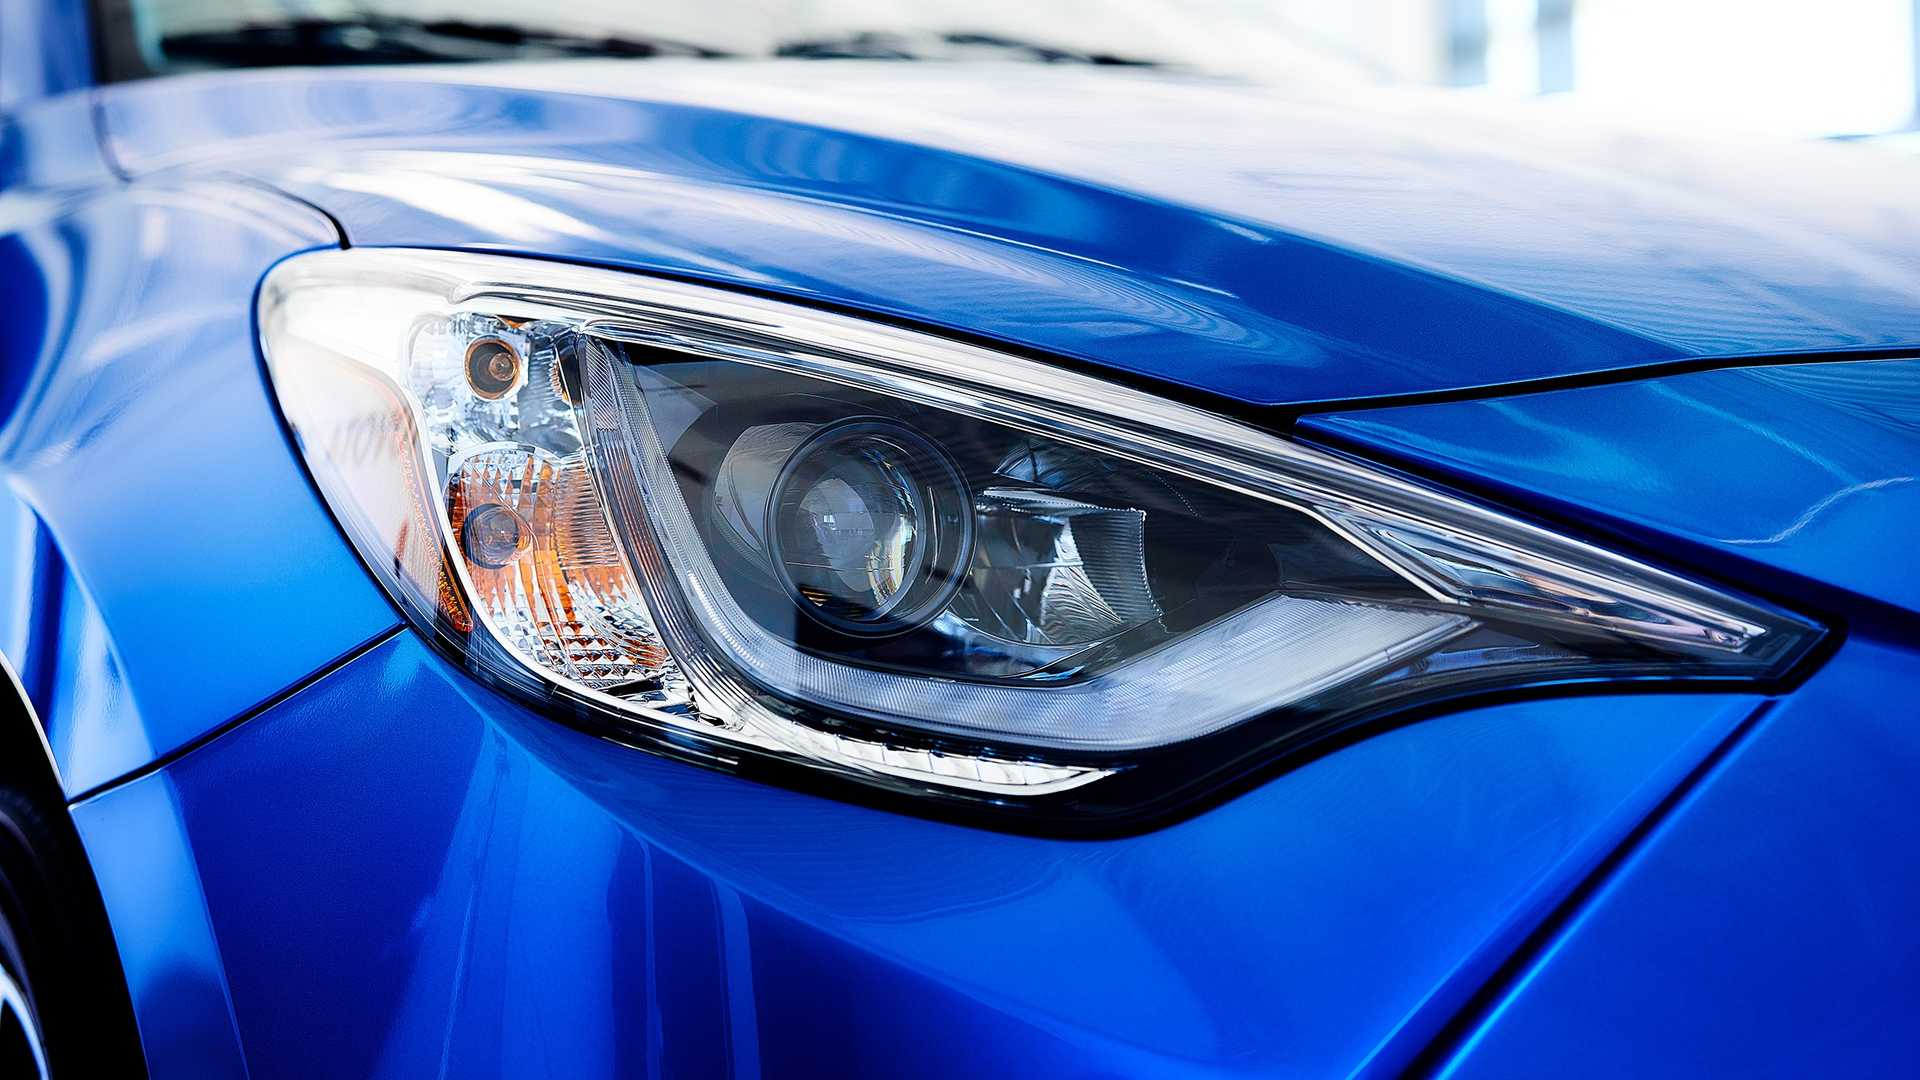 2020 Toyota Yaris Hatchback Headlight Wallpaper (7)